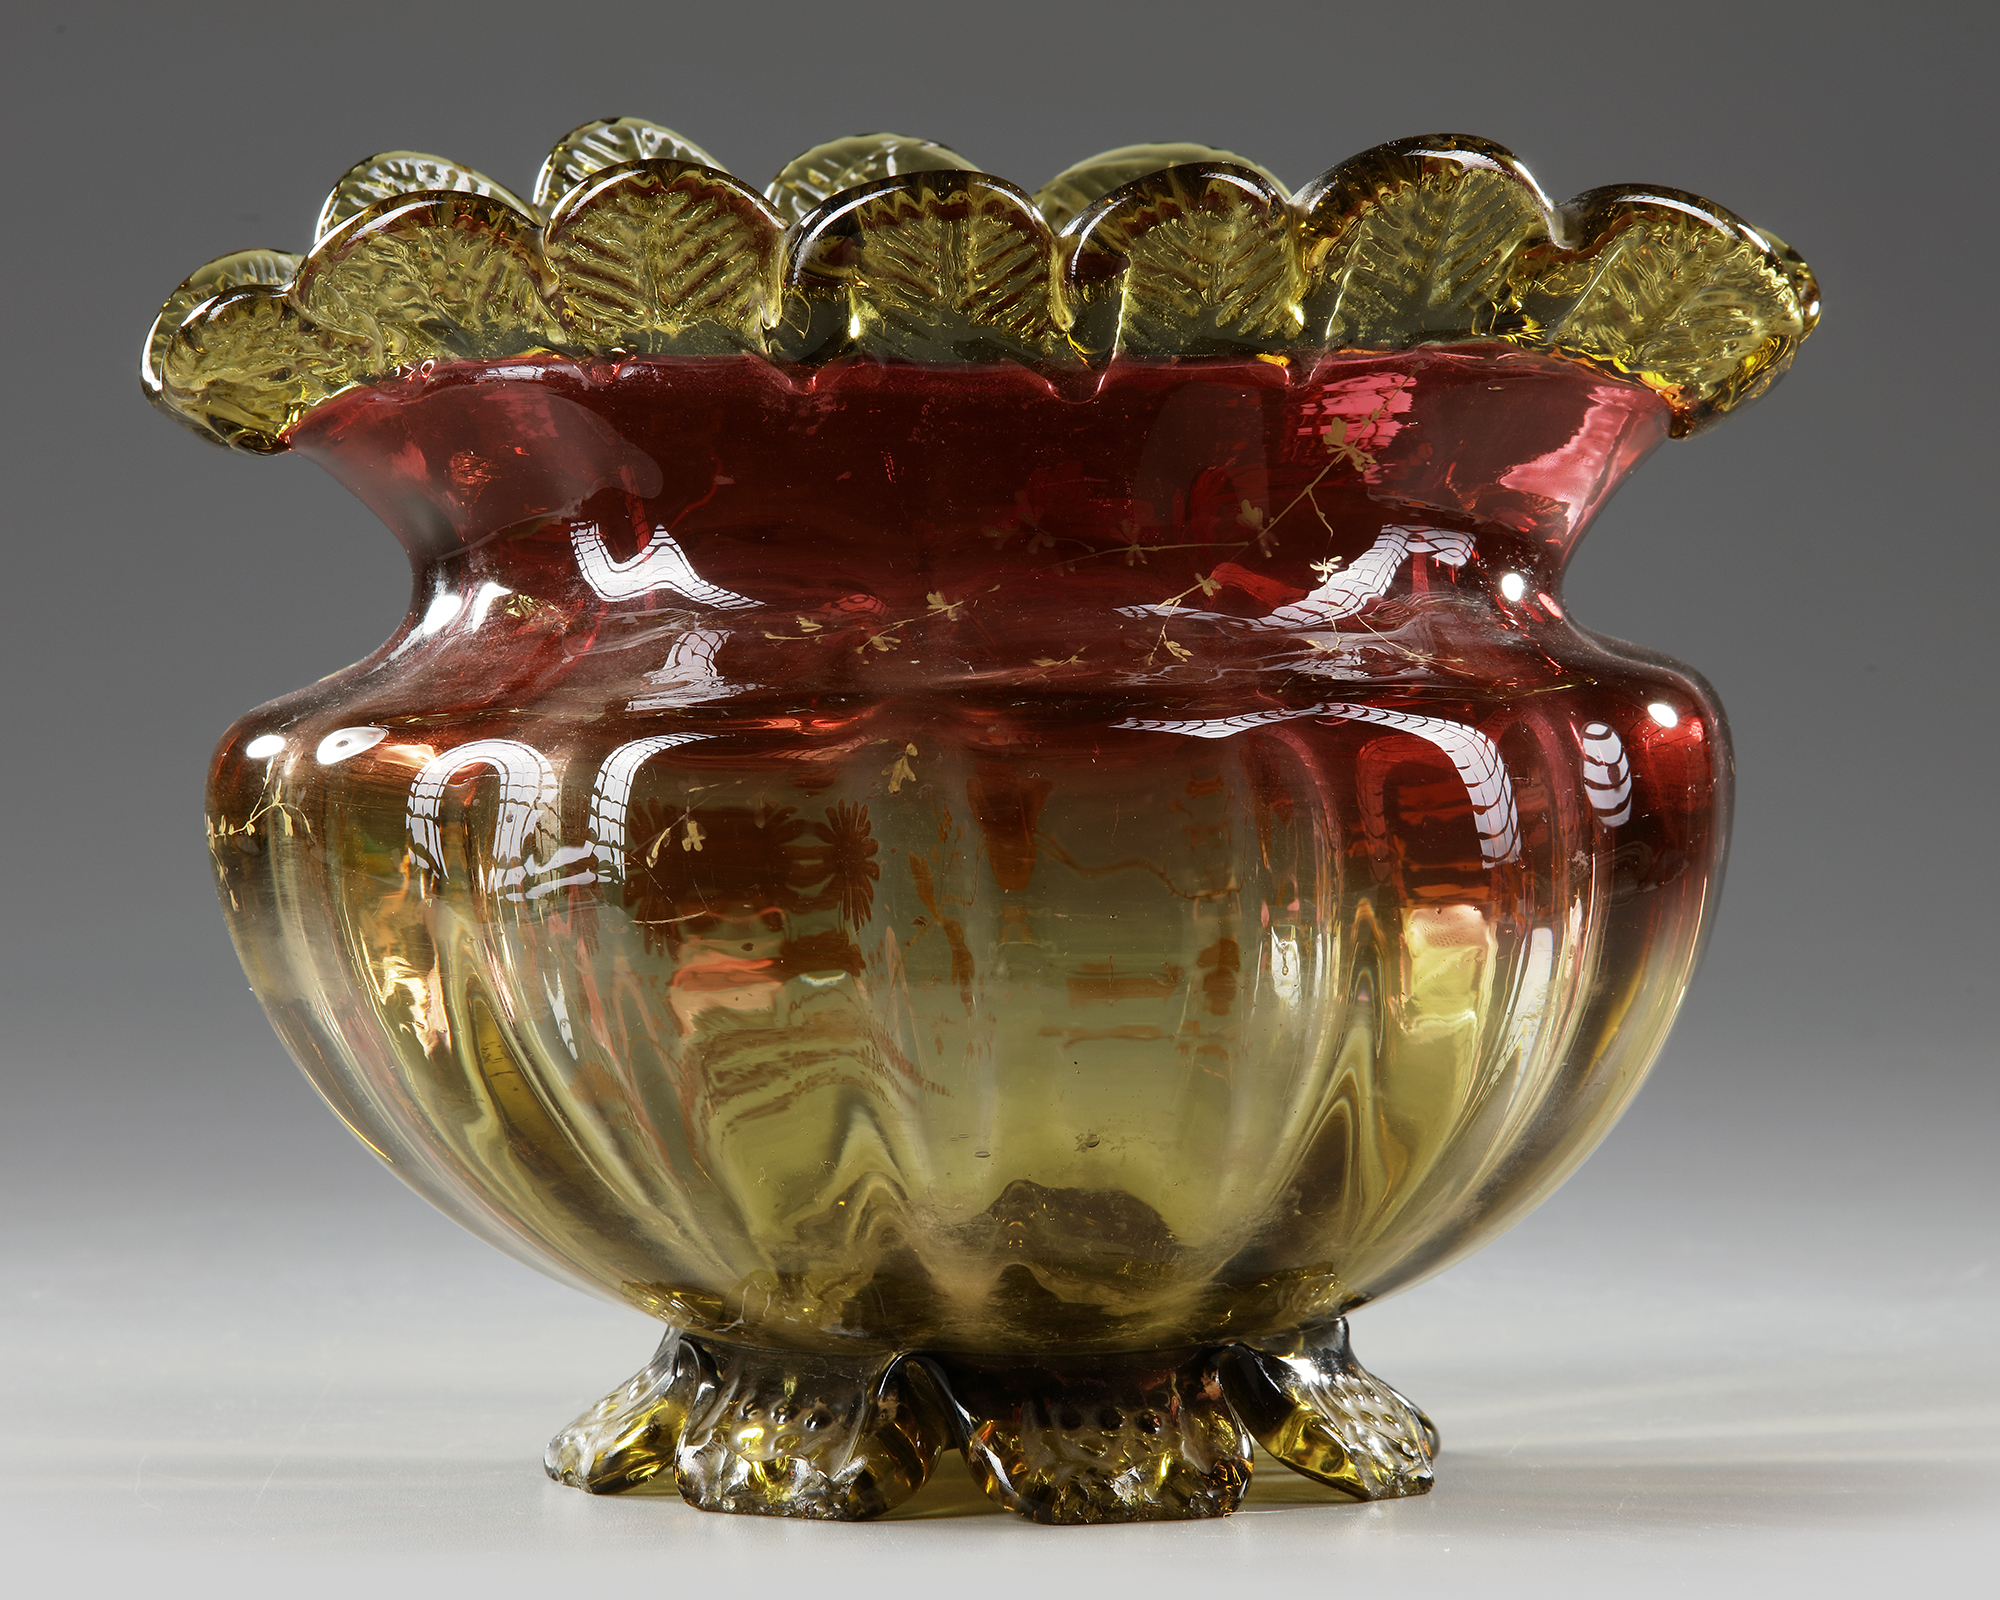 A BLOWN GLASS BOWL, 'LE GRAS', LATE 19TH CENTURY - Image 2 of 4